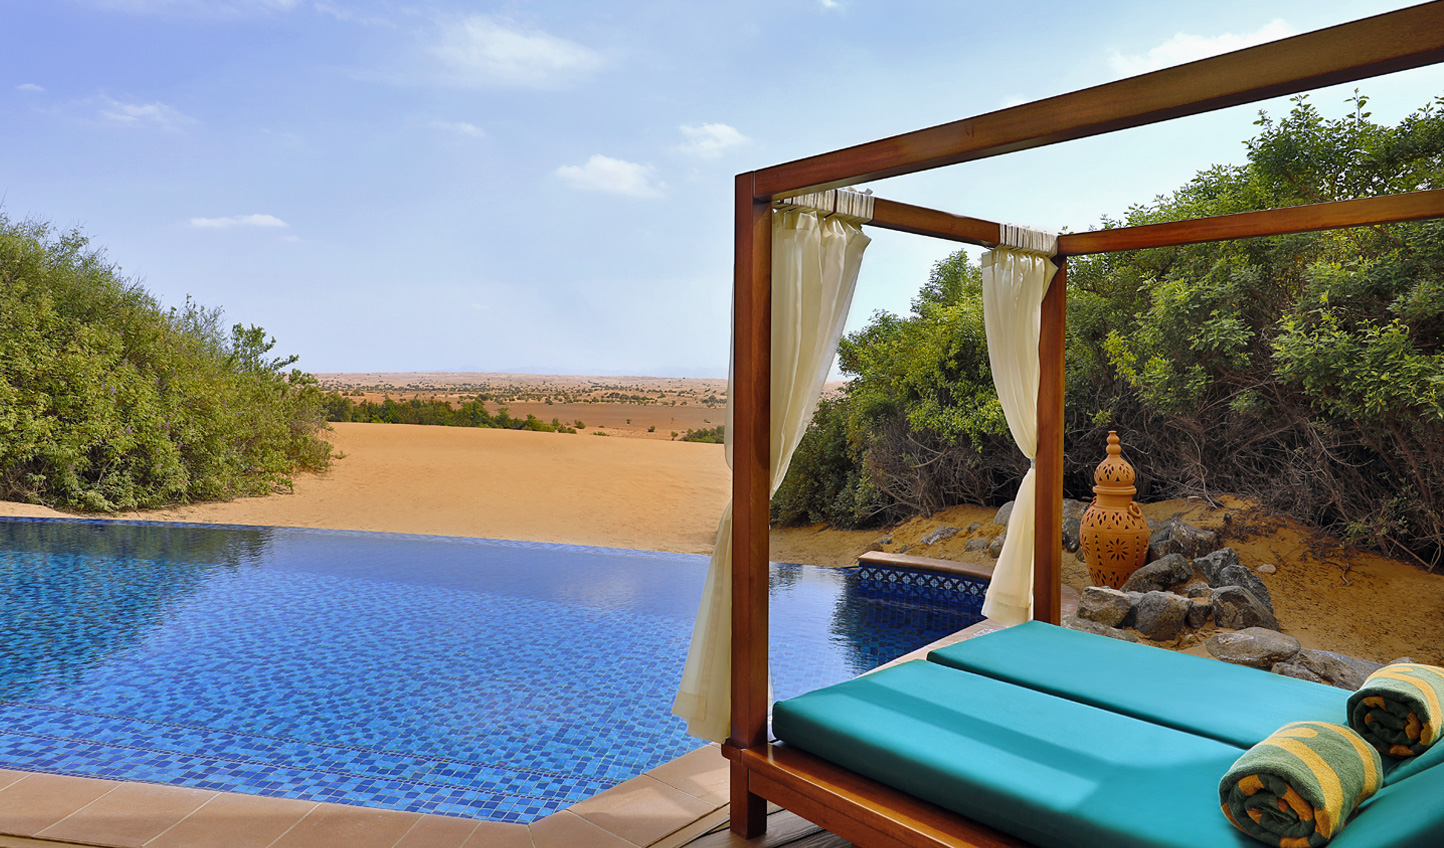 Lounge by your Emirates Suite pool in the middle of the Dubai desert